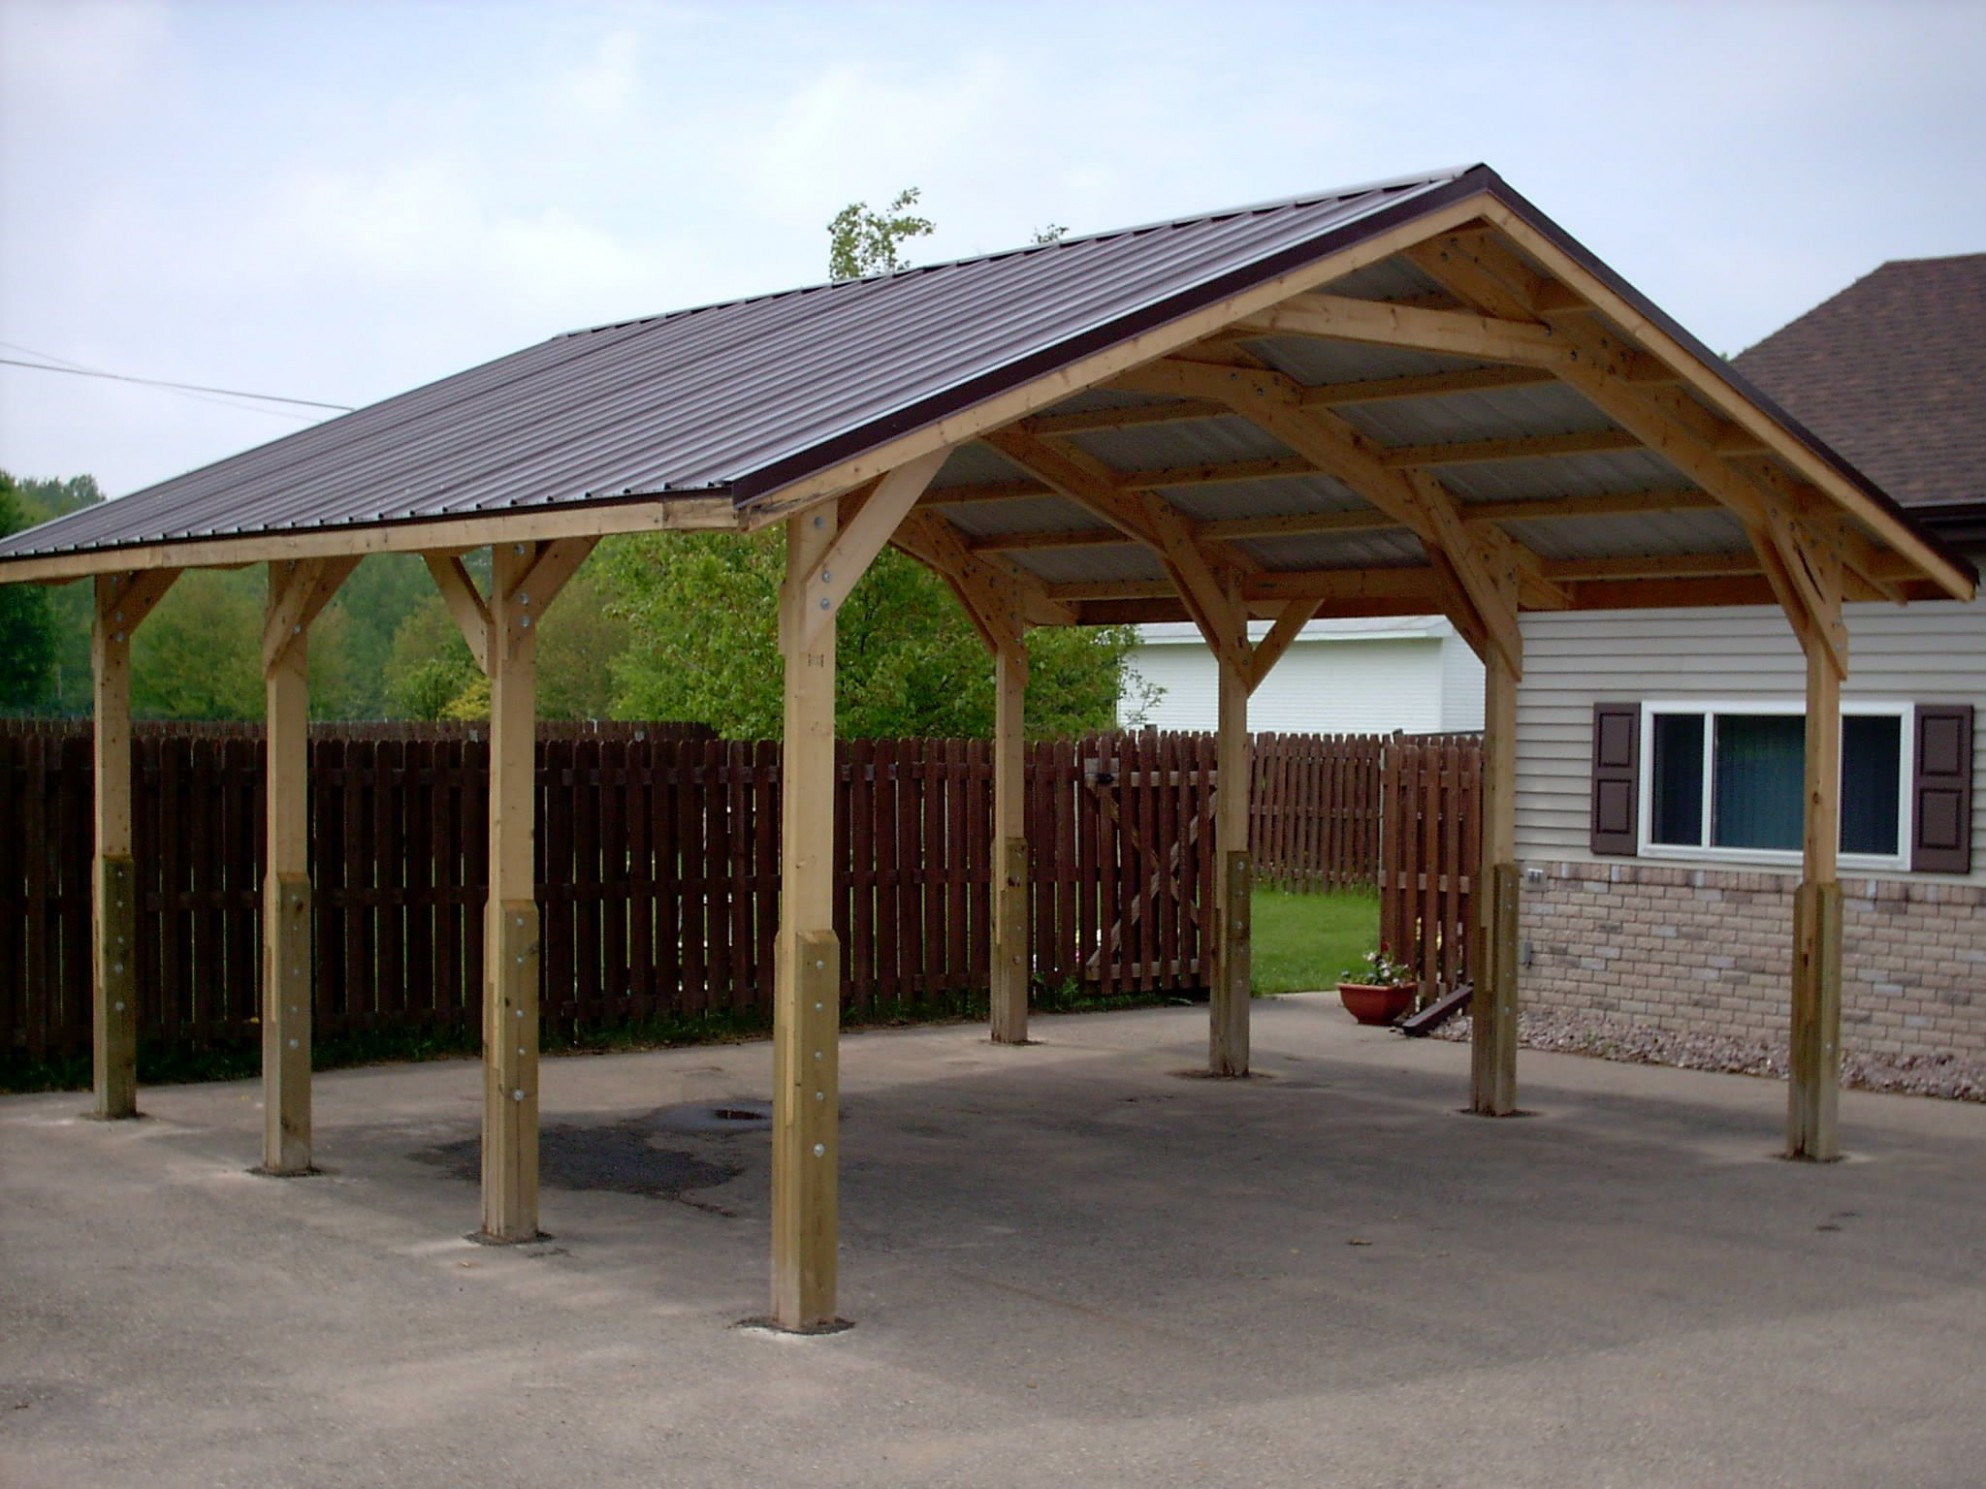 Best ideas about DIY Metal Carports Kits . Save or Pin Tarp Canopy Kits & Tarp Carport Mehr Now.